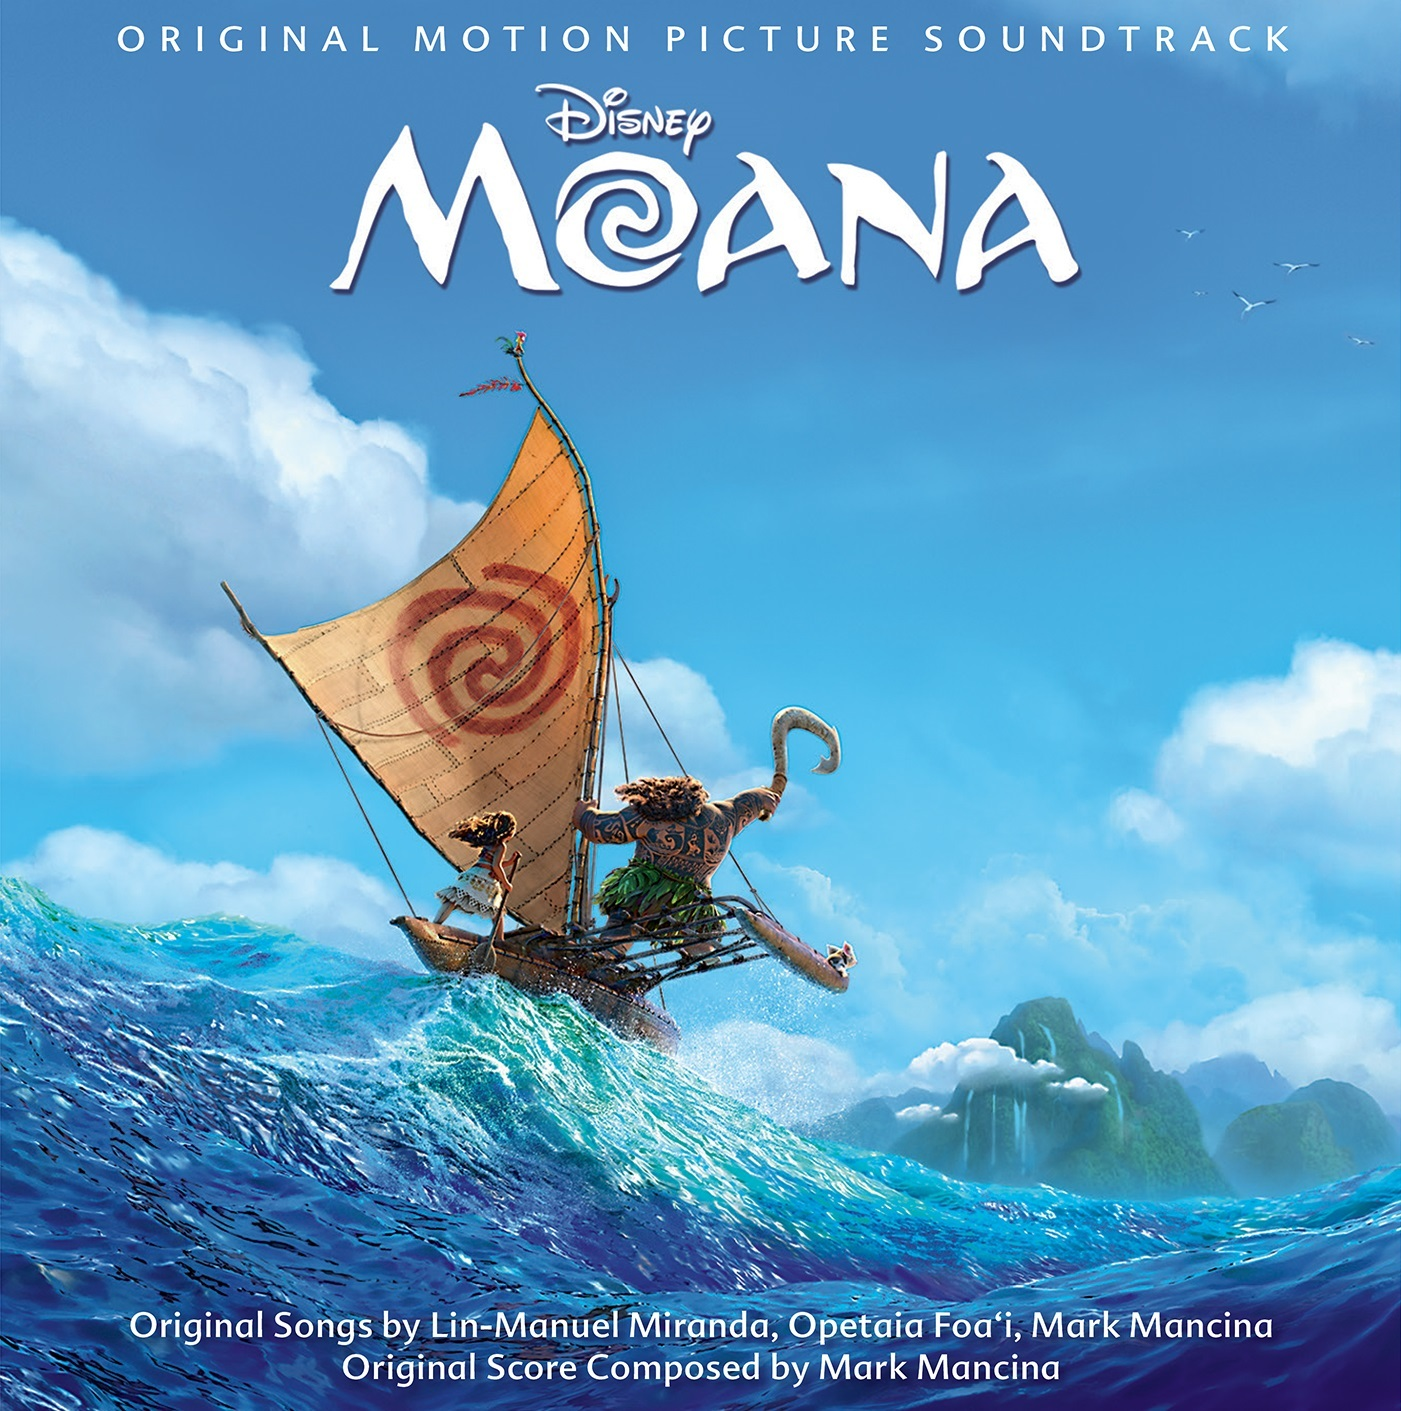 Moana - The Original Motion Picture Soundtrack image